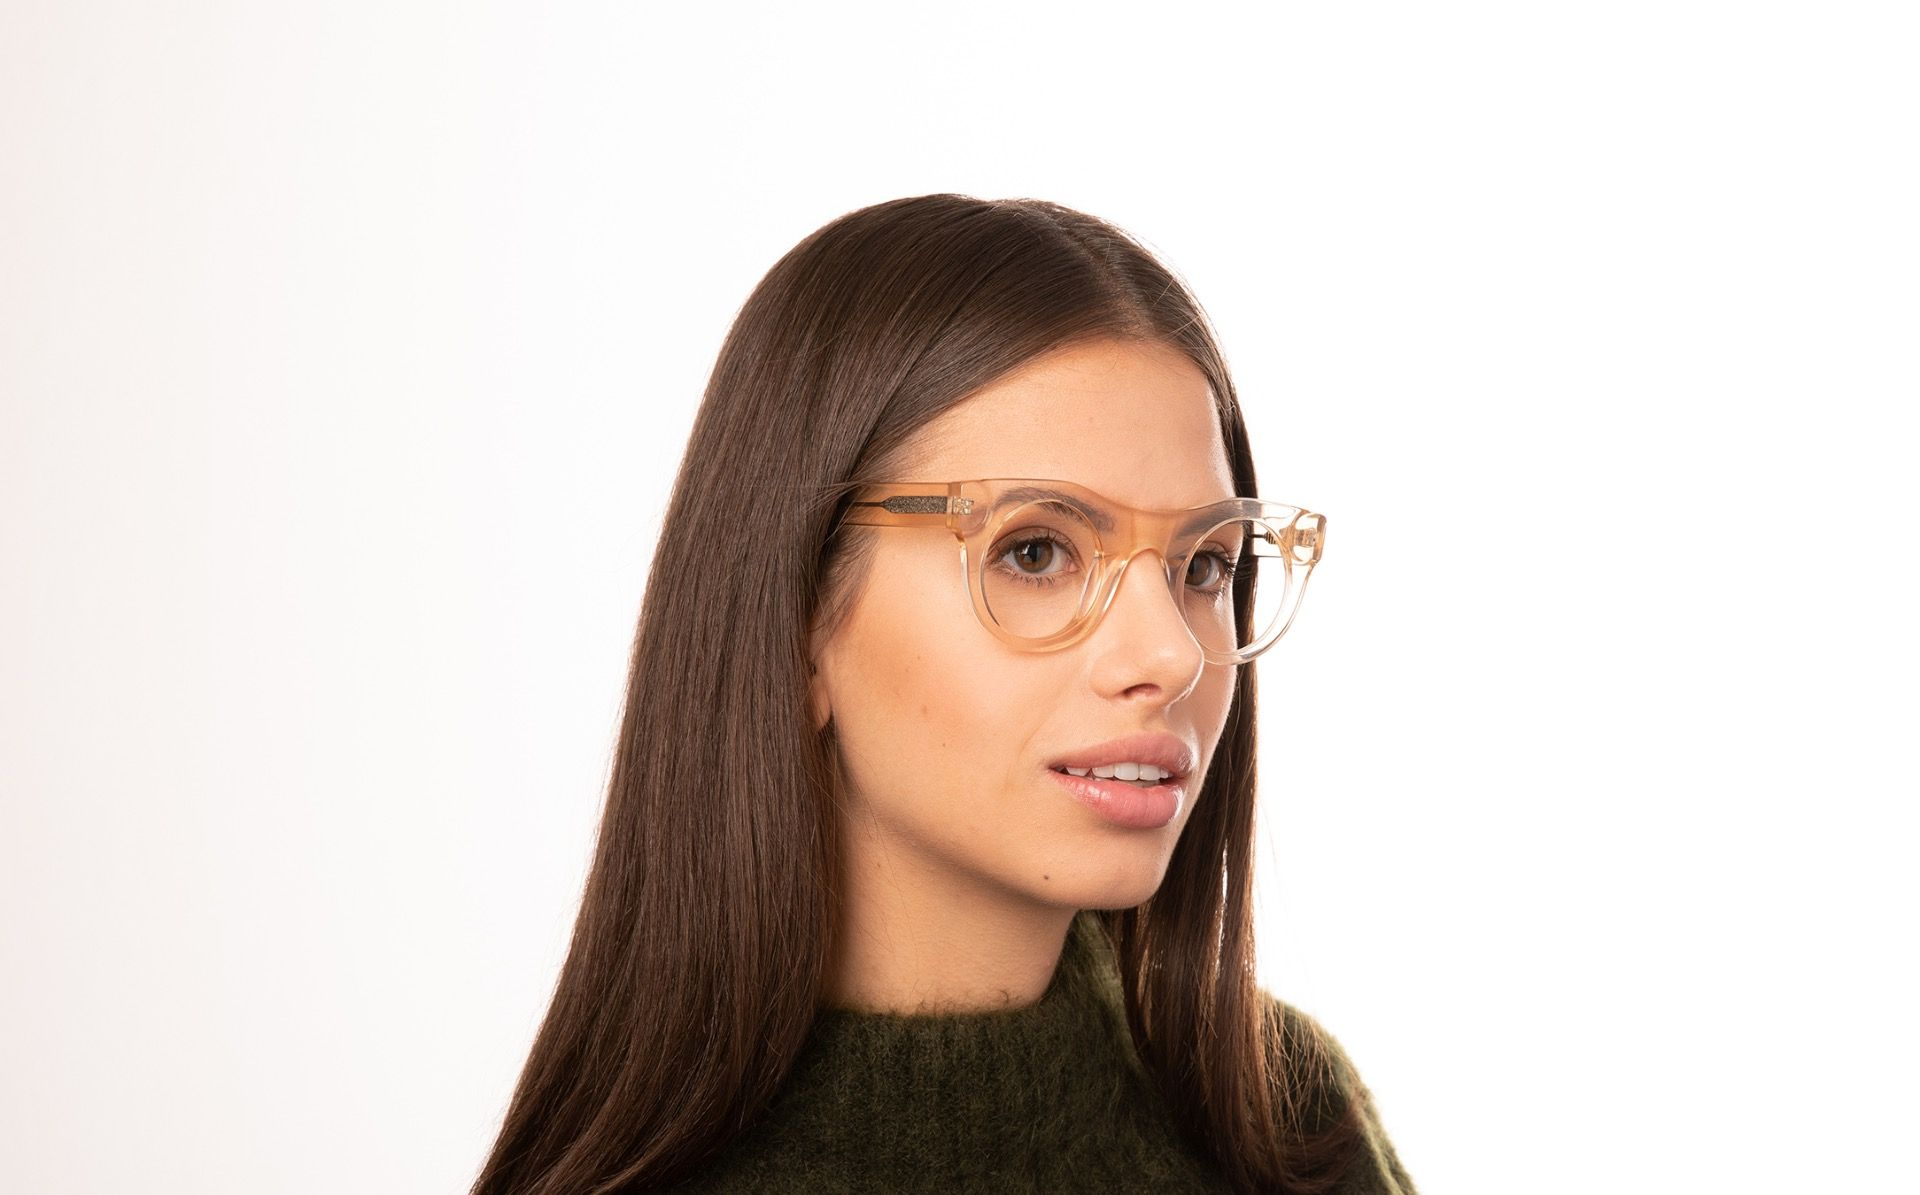 wilshire polette glasses model view 01